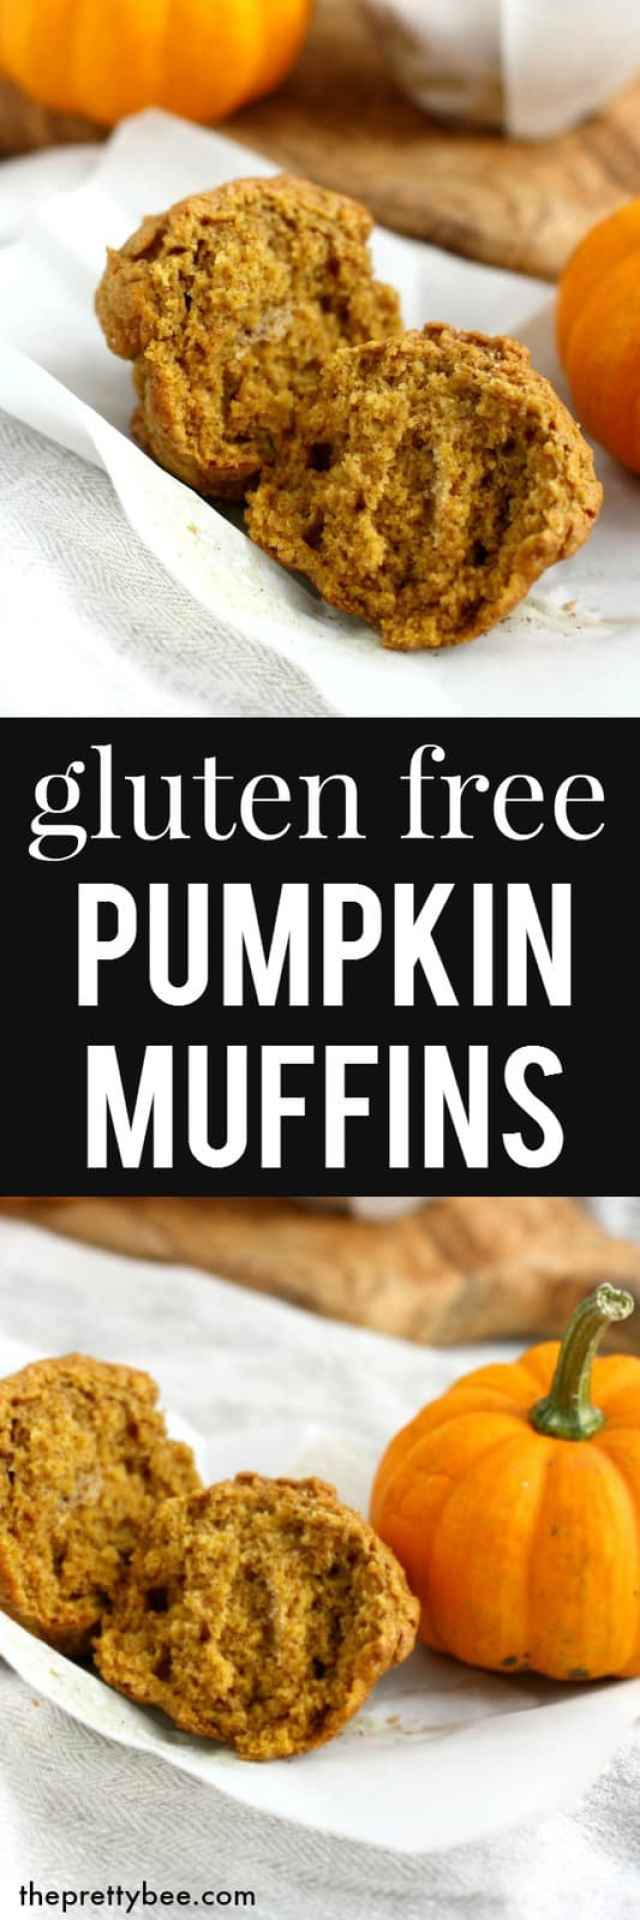 The perfect fall recipe - enjoy these gluten free pumpkin muffins with ...